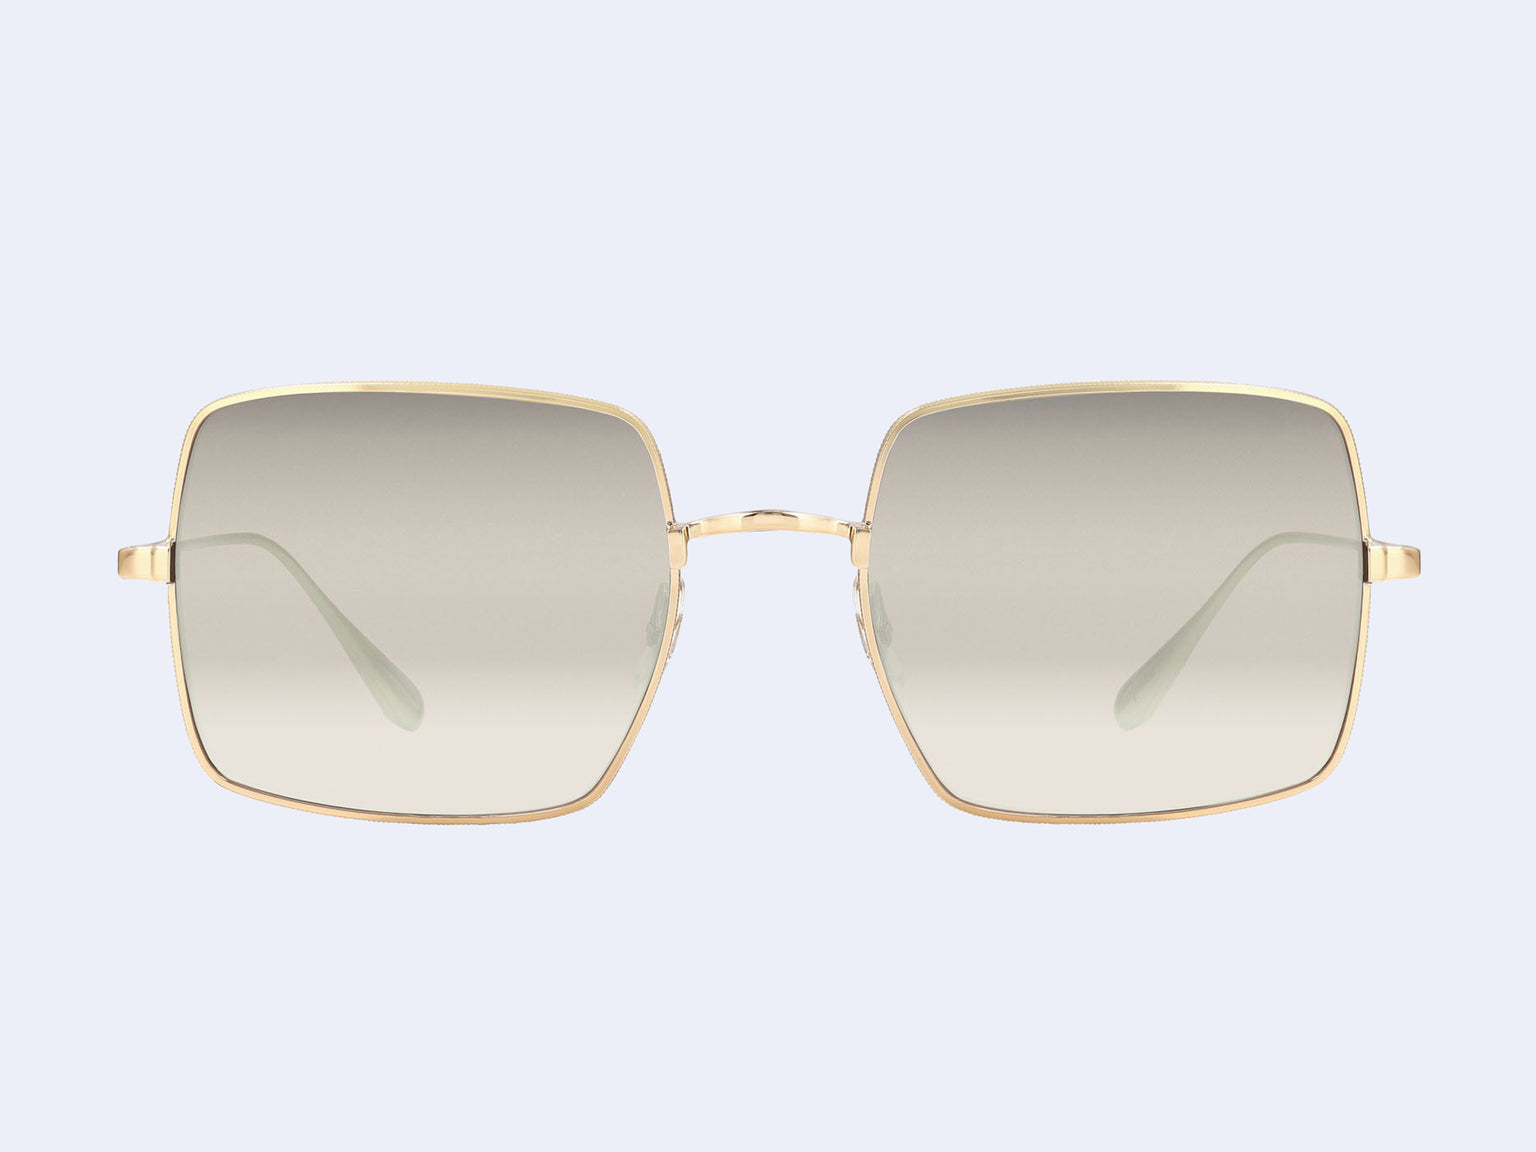 Garrett Leight Crescent Sun (Gold with Semi-Flat Dust Mirror Lens)